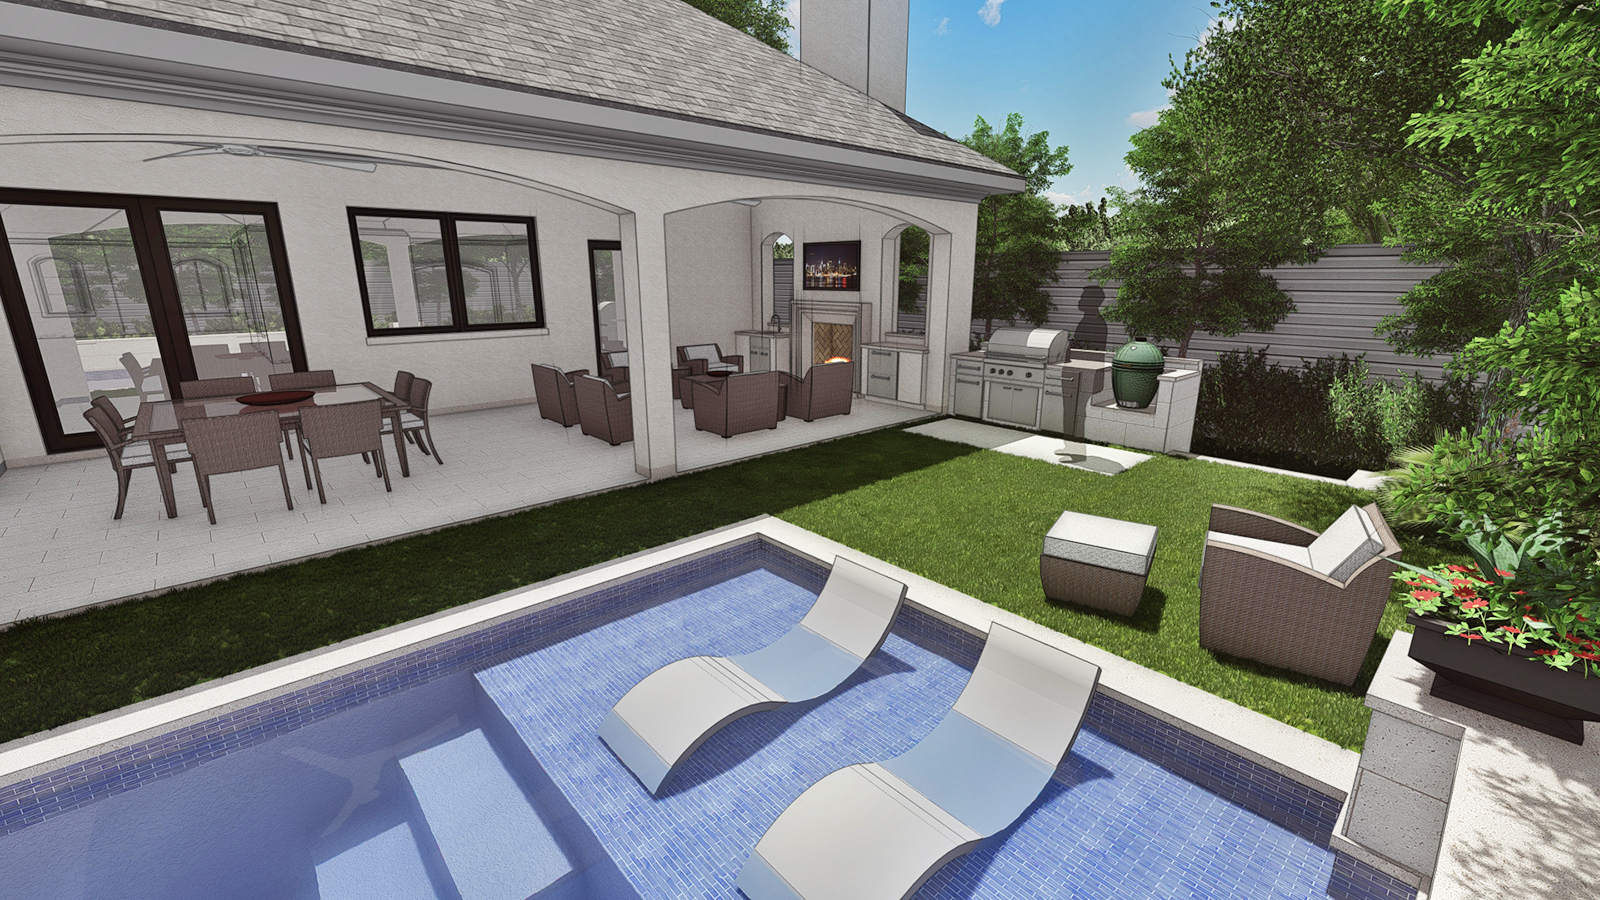 POOL VIEW OF WEST END, PORCH & GRILL AREA